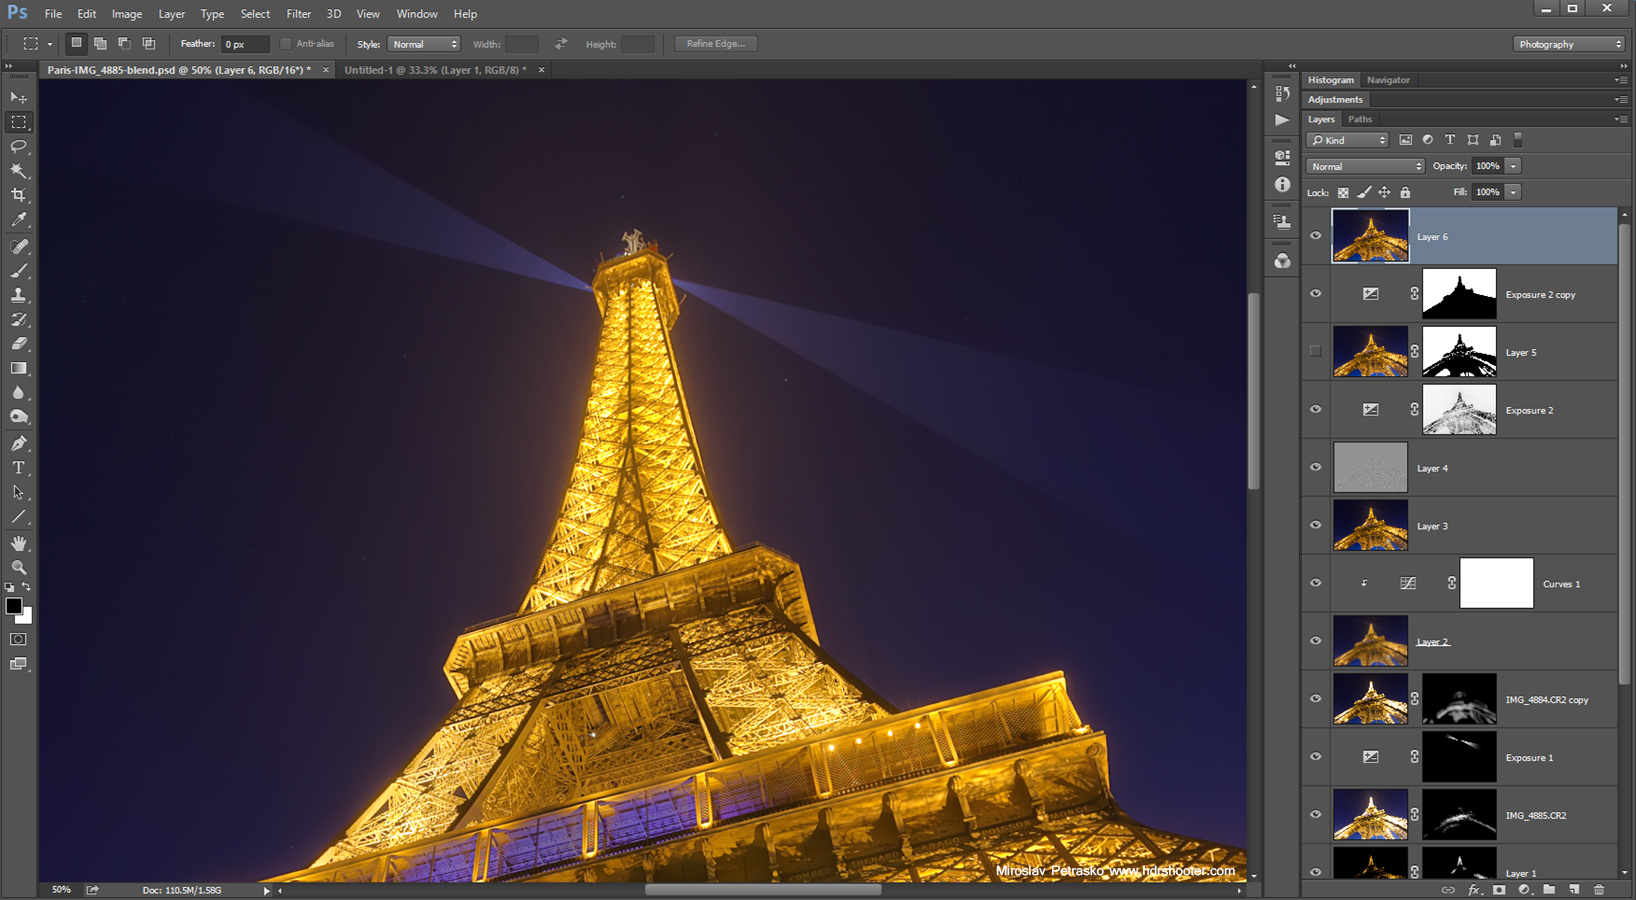 Color banding - how to avoid and remove it - HDRshooter